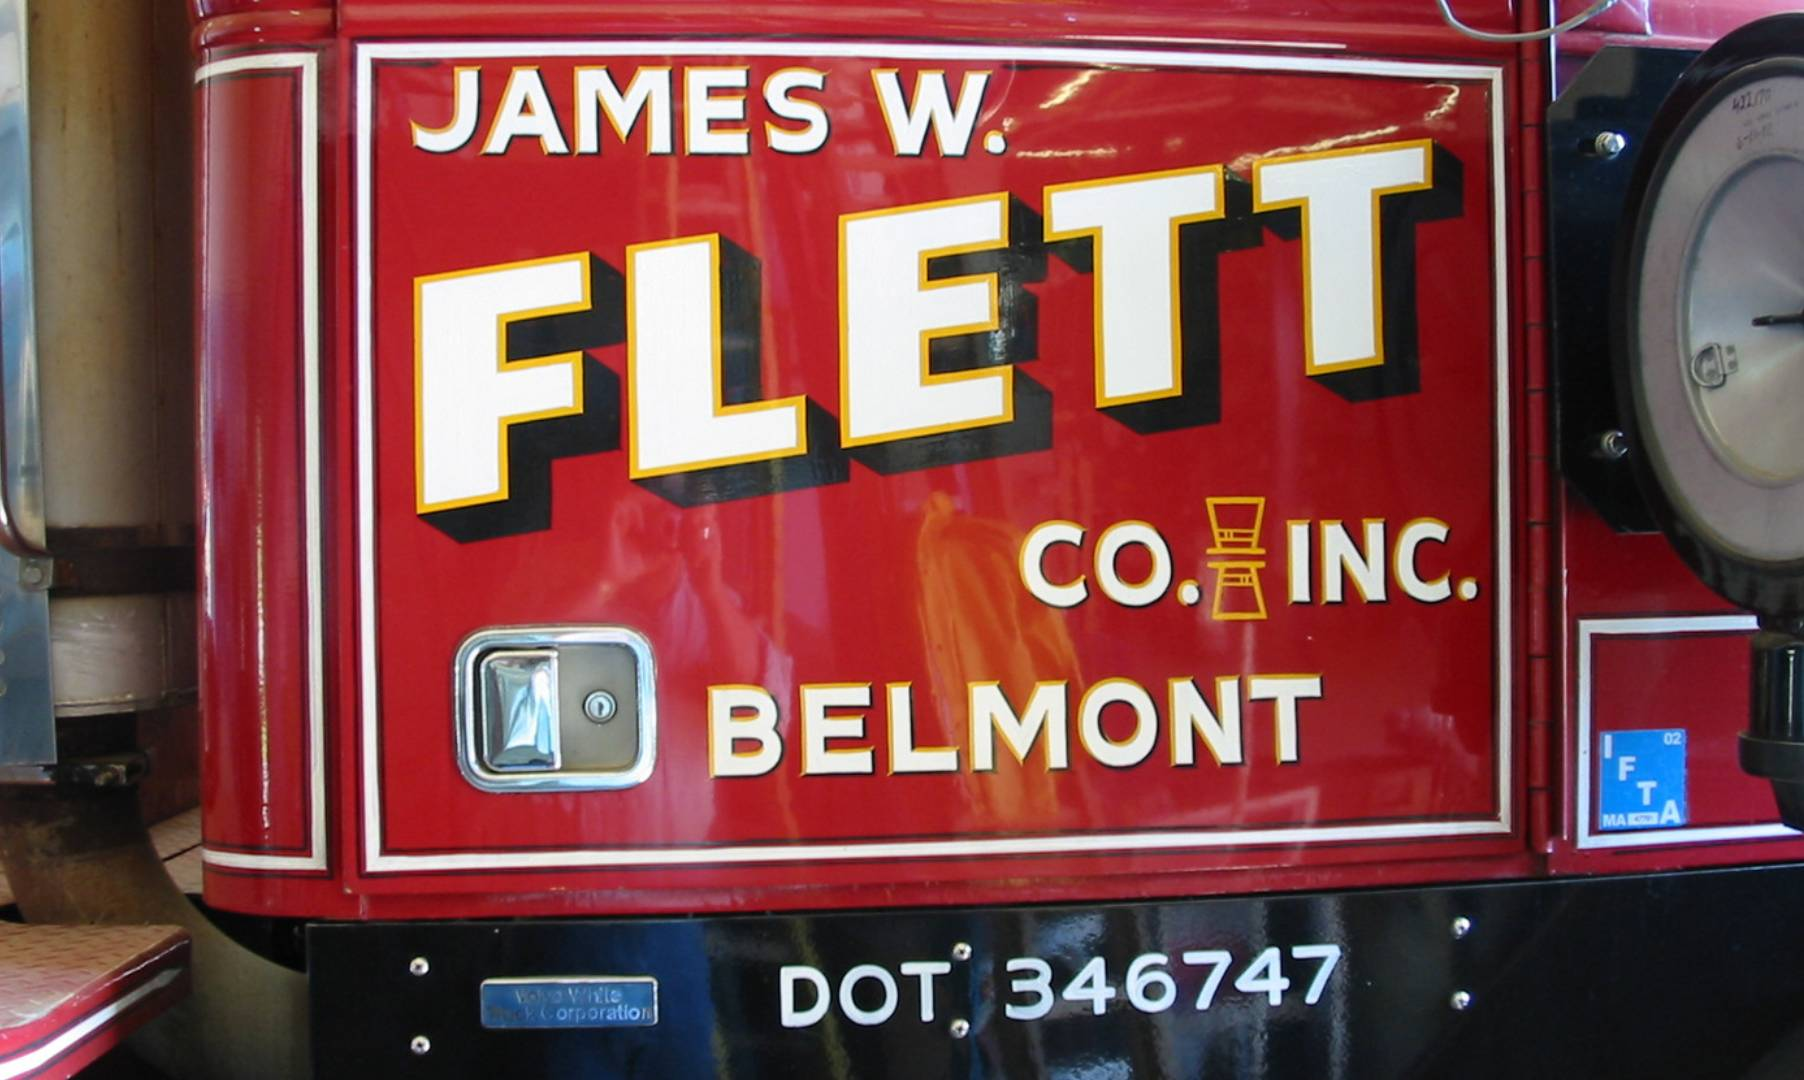 James W Fleet Co. Inc